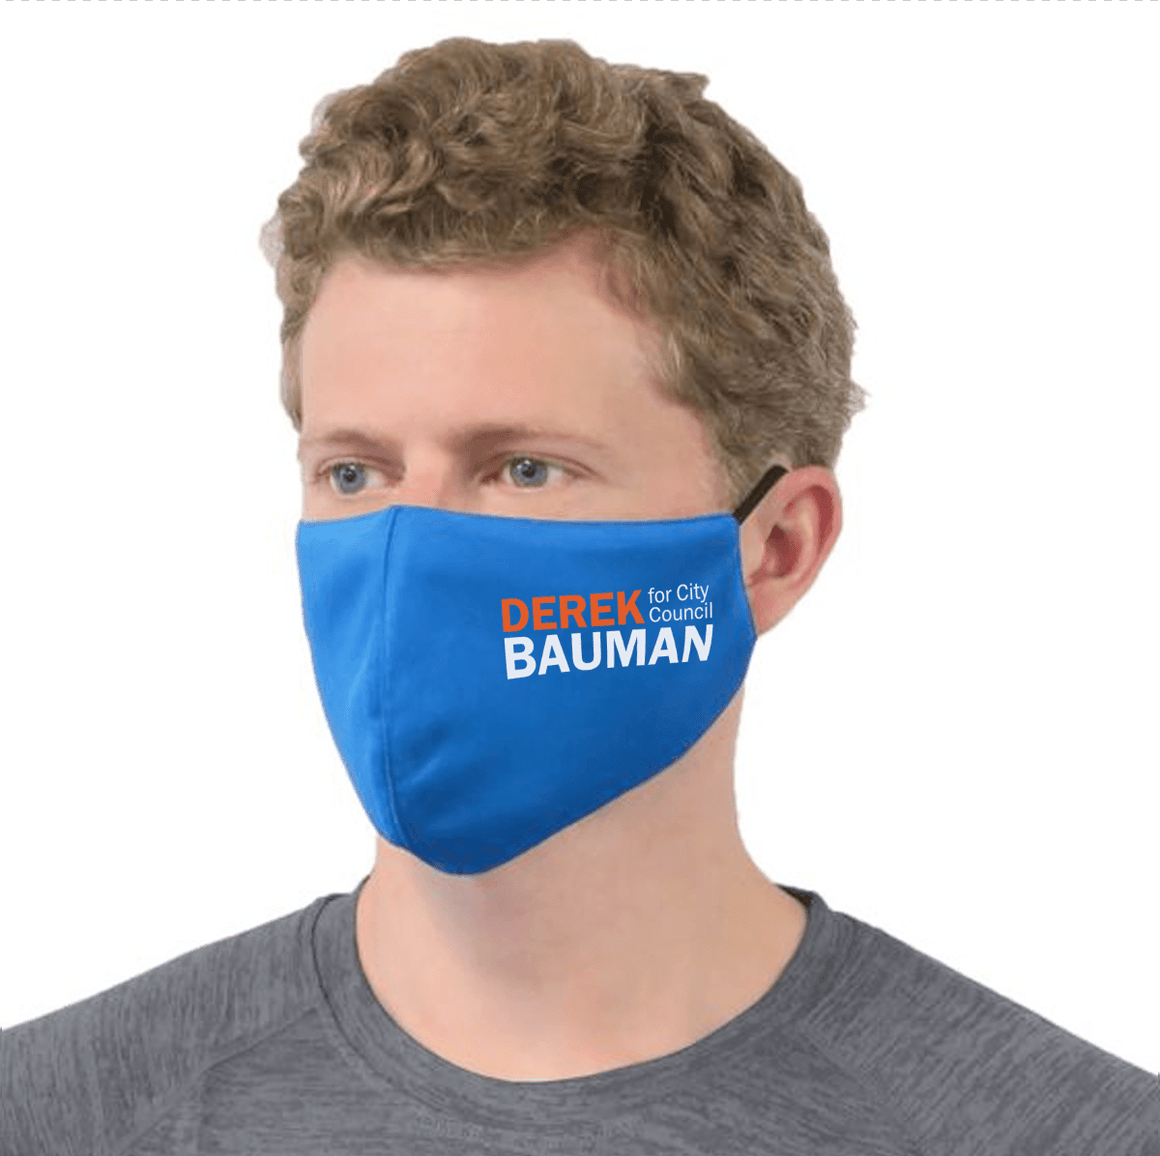 Derek Bauman For City Council Mask - Blue unionstrongshirts